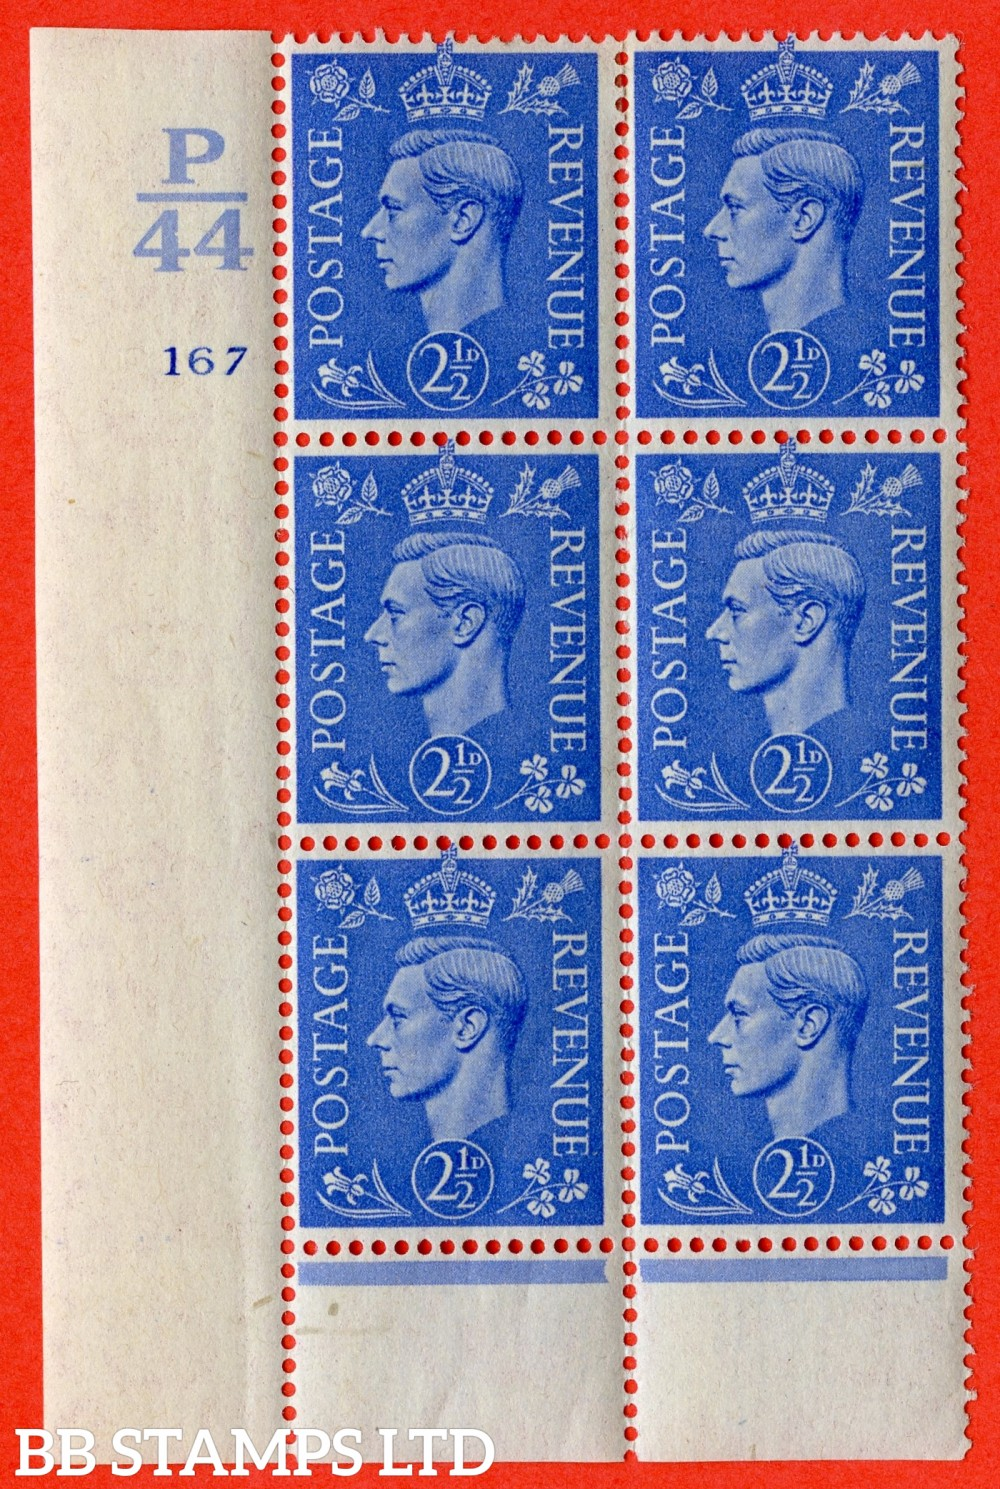 """SG. 489. Q14. 2½d Light ultramarine. A  very fine lightly mounted mint """"  Control P44 cylinder 167 no dot """" control block of 6 with perf type 6 I/E."""